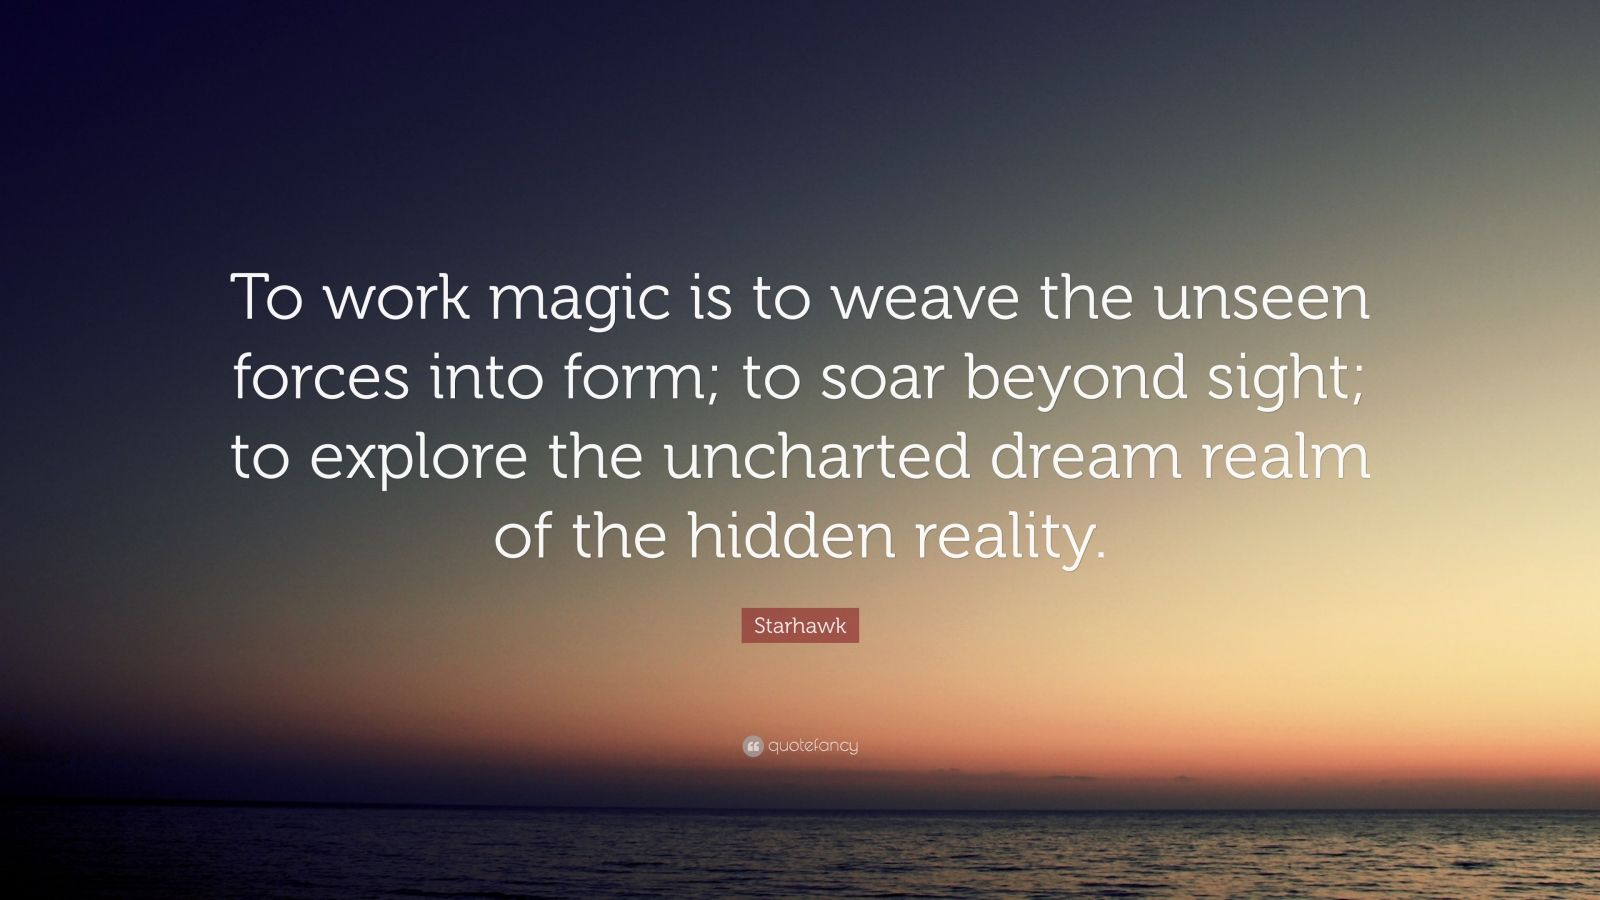 """Starhawk Quote: """"To work magic is to weave the unseen forces into form; to soar beyond sight; to explore the uncharted dream realm of the hidden reality."""""""